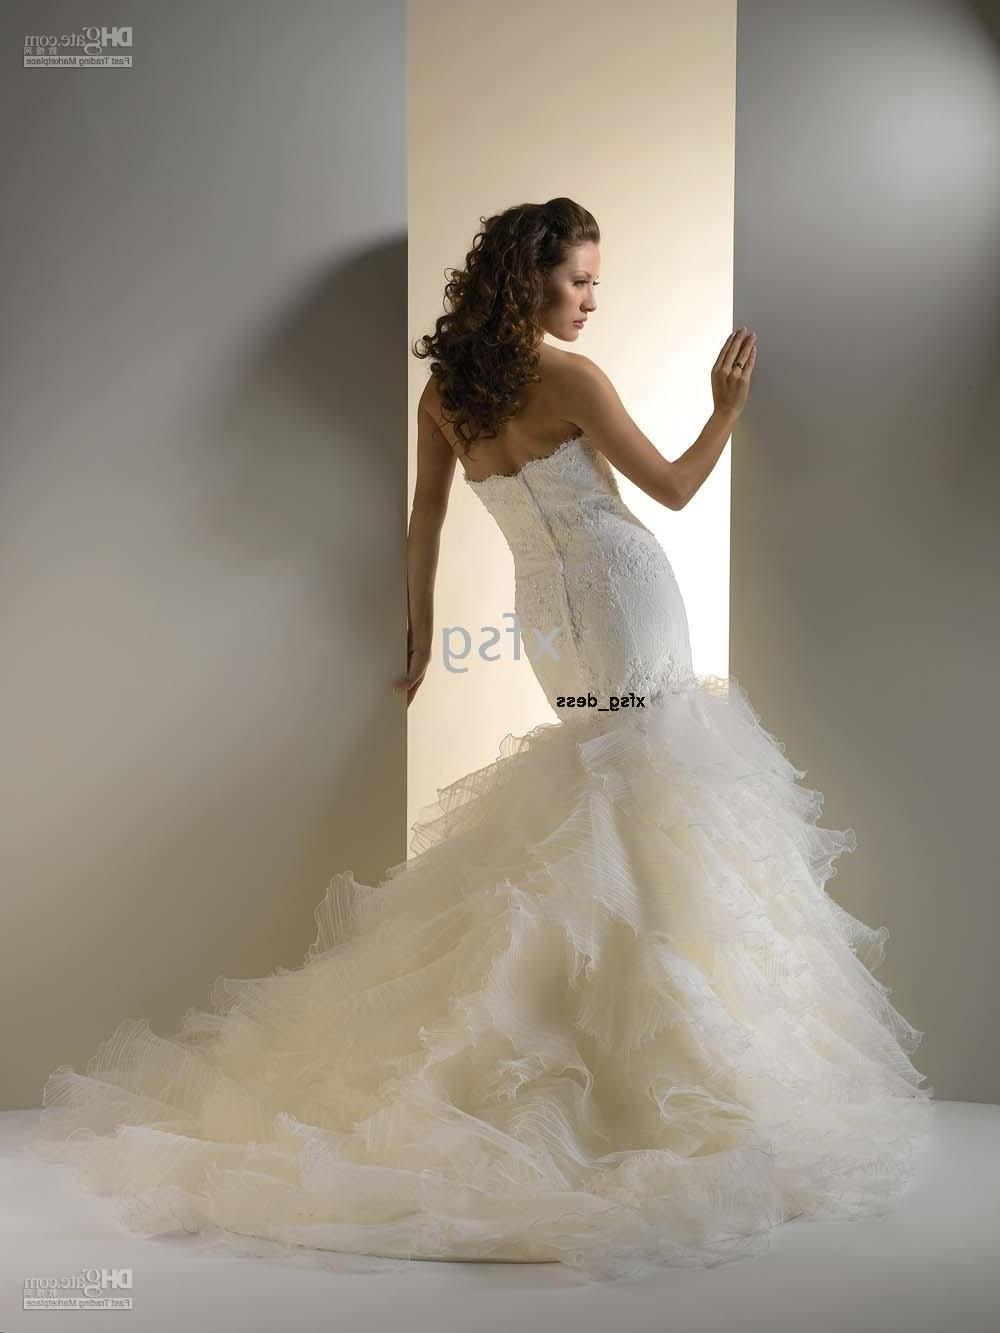 slim wedding dress with zipper corset and Detachable tail,strapless style.